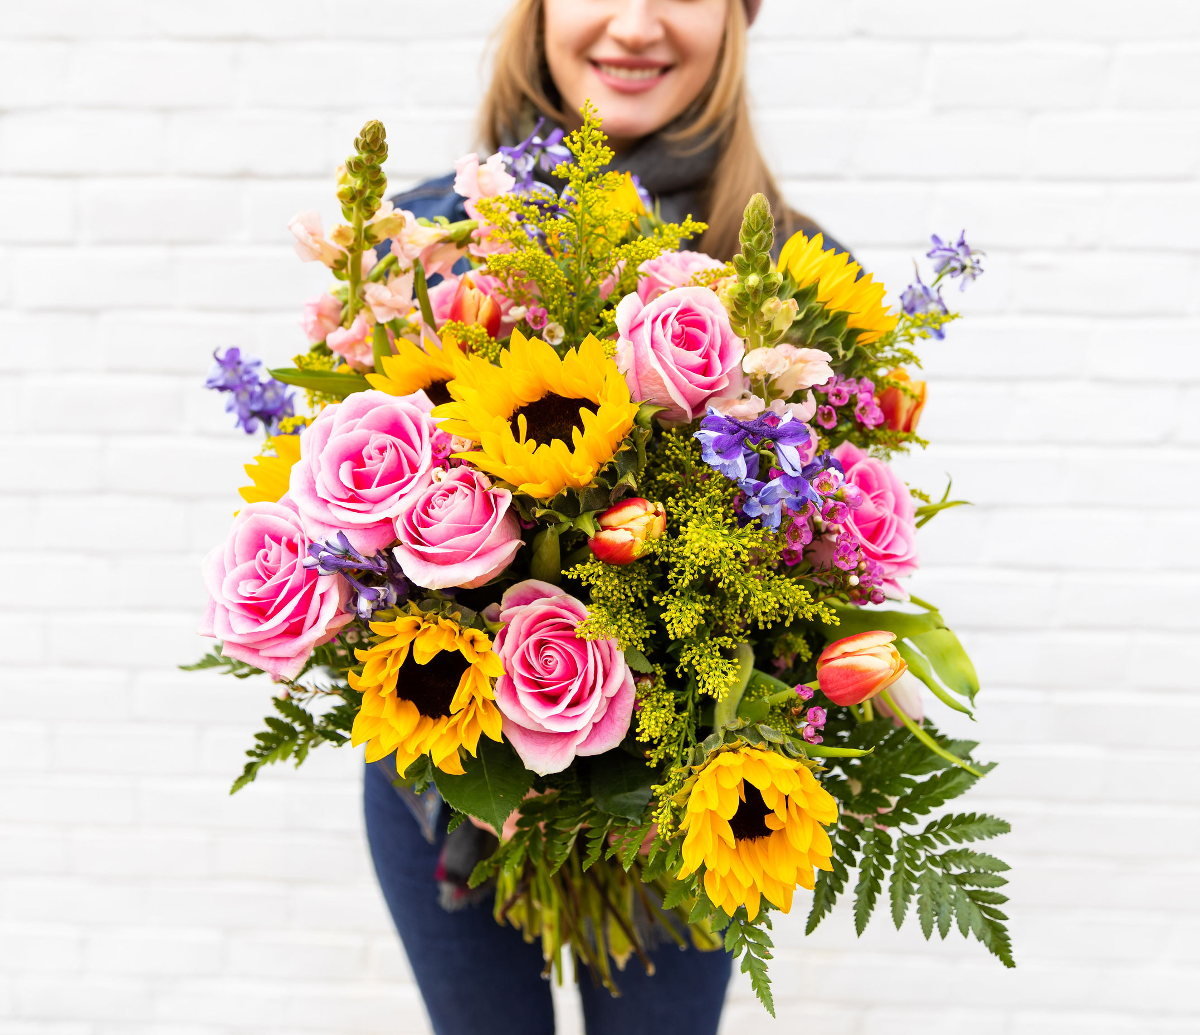 The Best Flower Gifts You Can Give